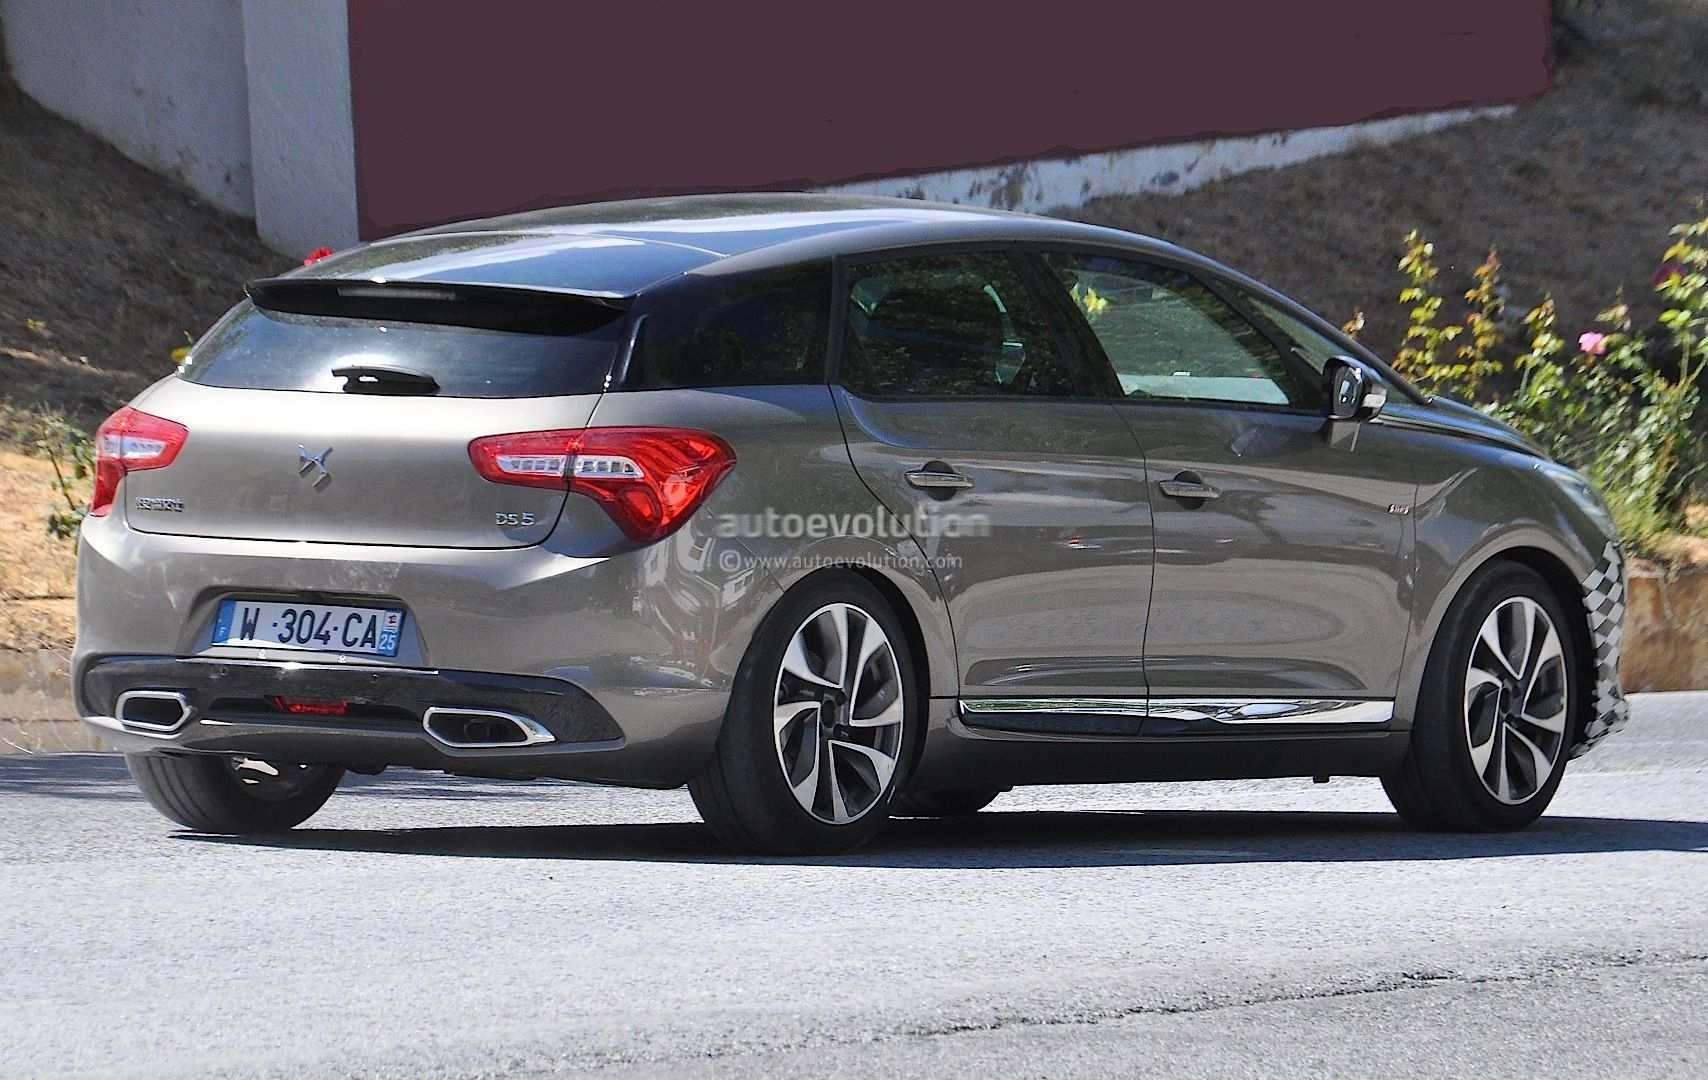 74 Gallery of Citroen Ds5 2020 Specs with Citroen Ds5 2020